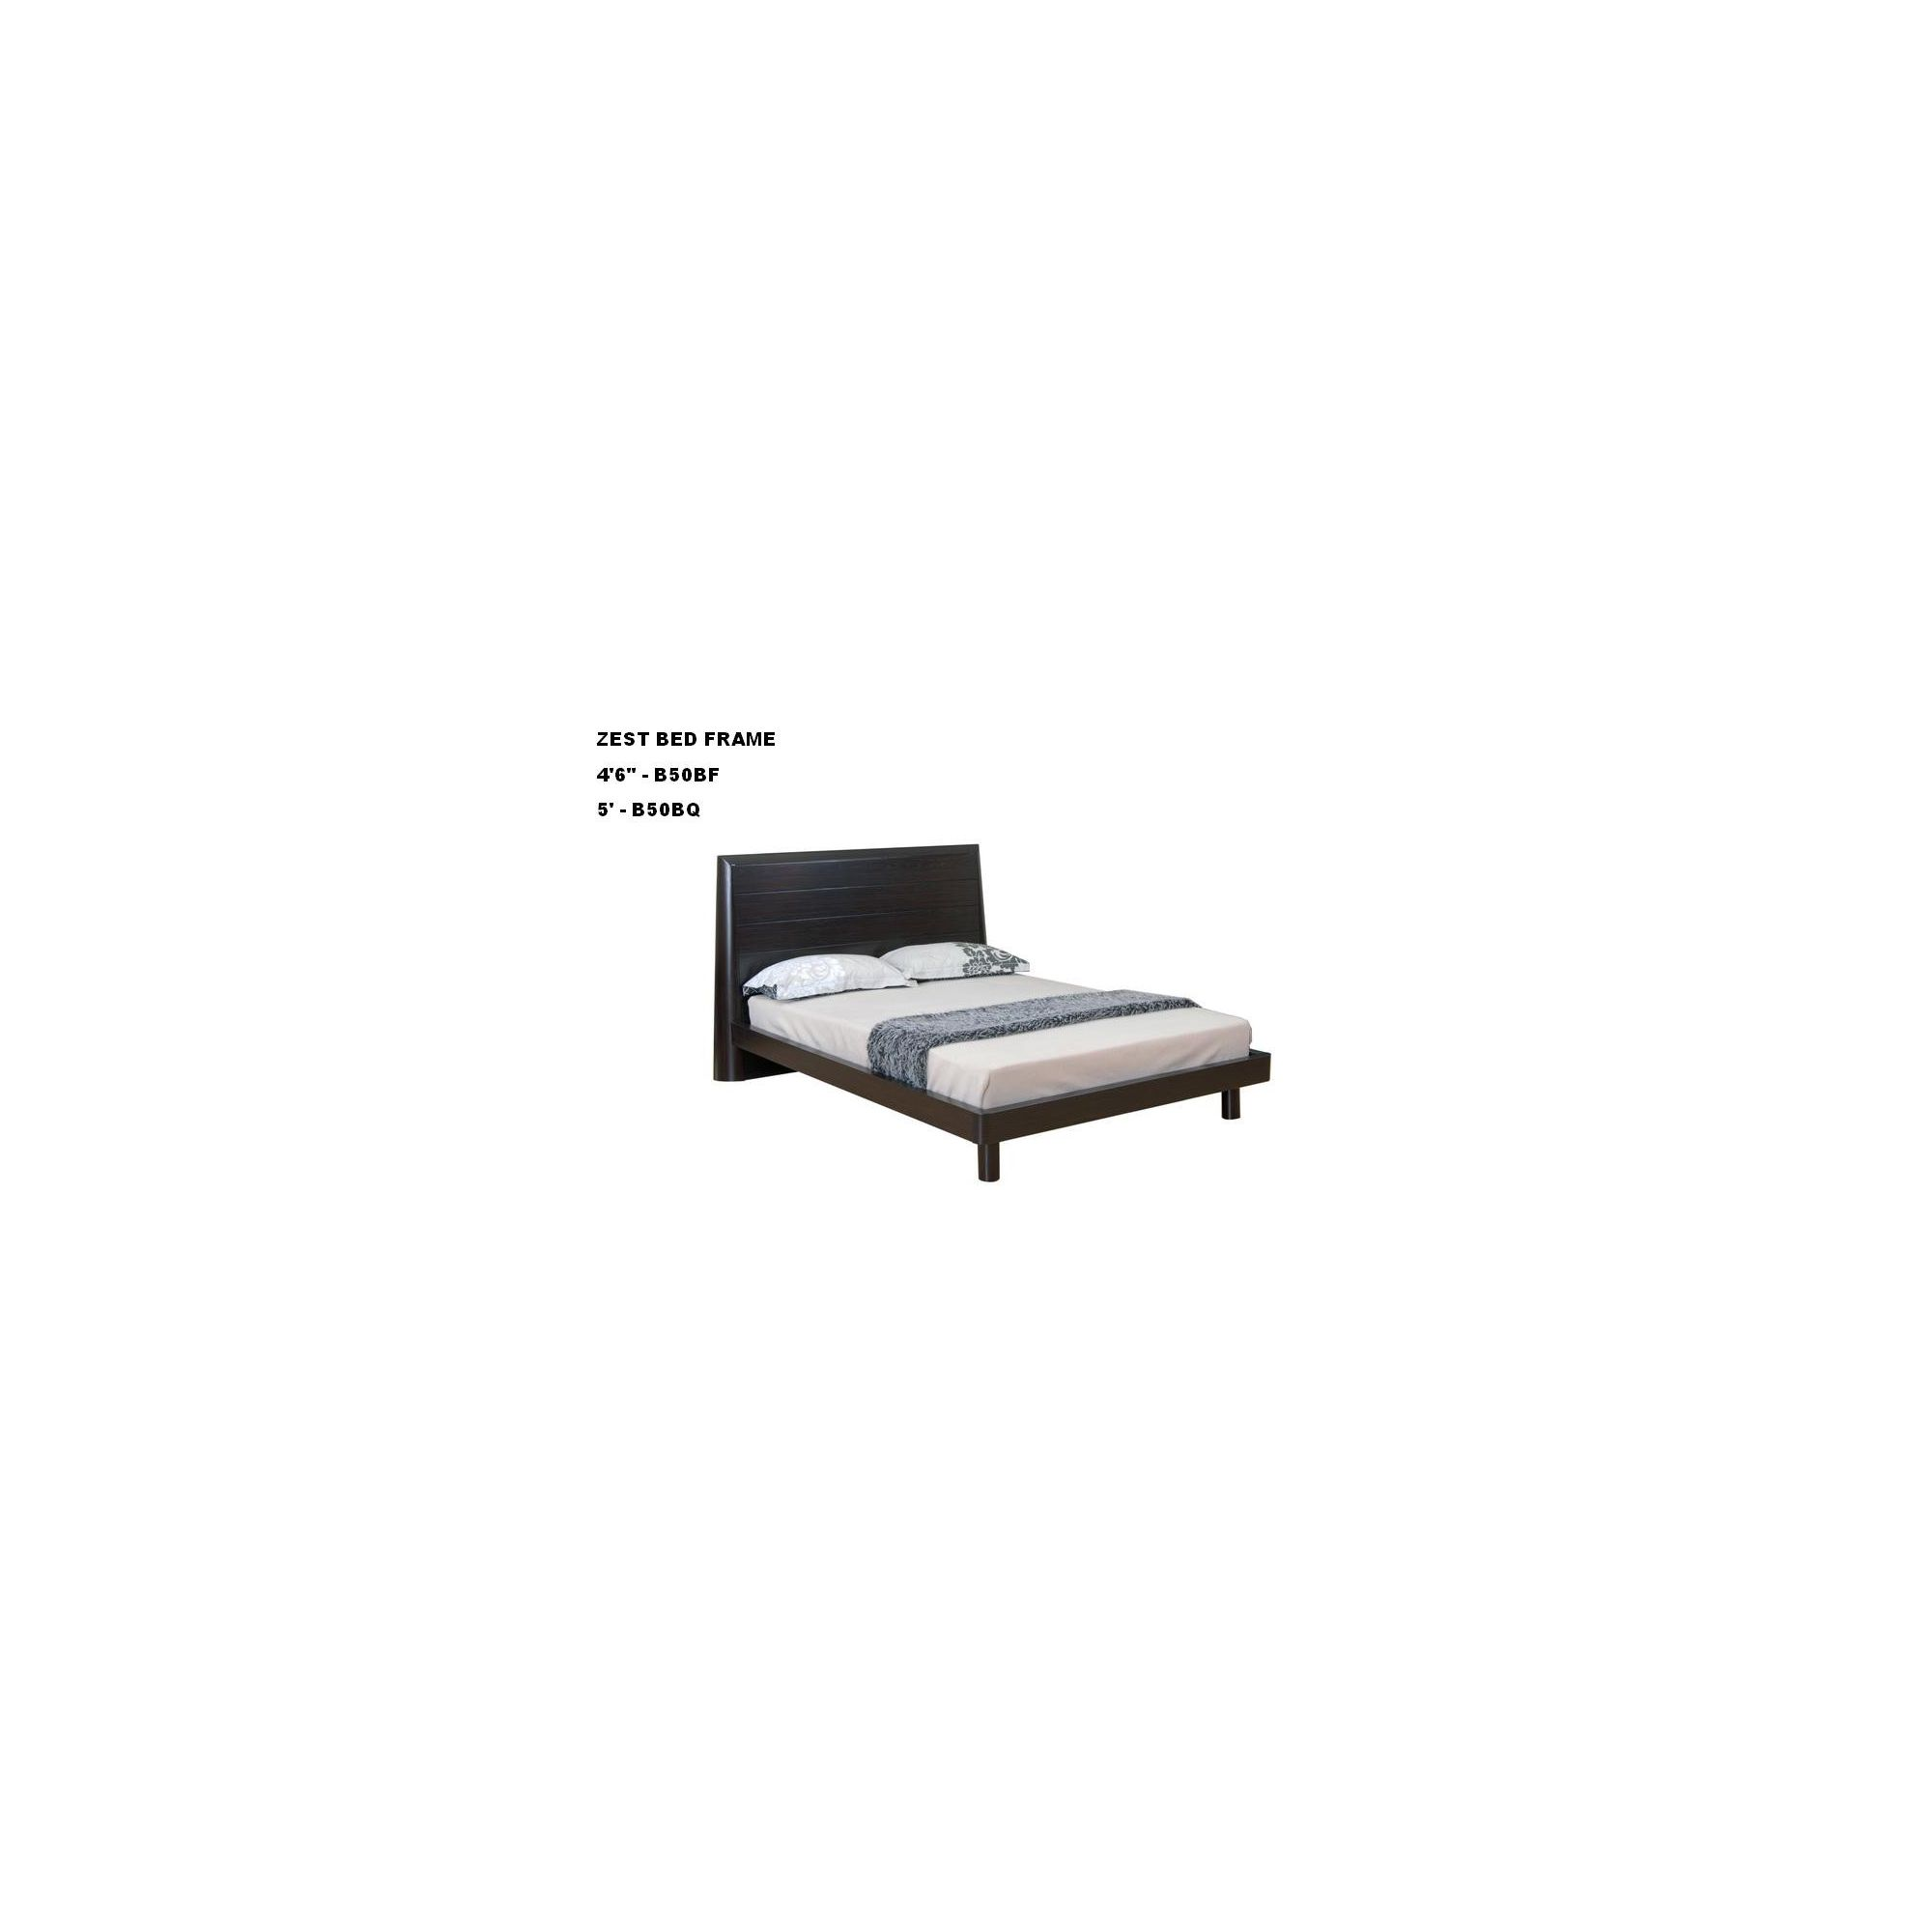 Central Furniture Distribution Zest Bed - Double at Tesco Direct